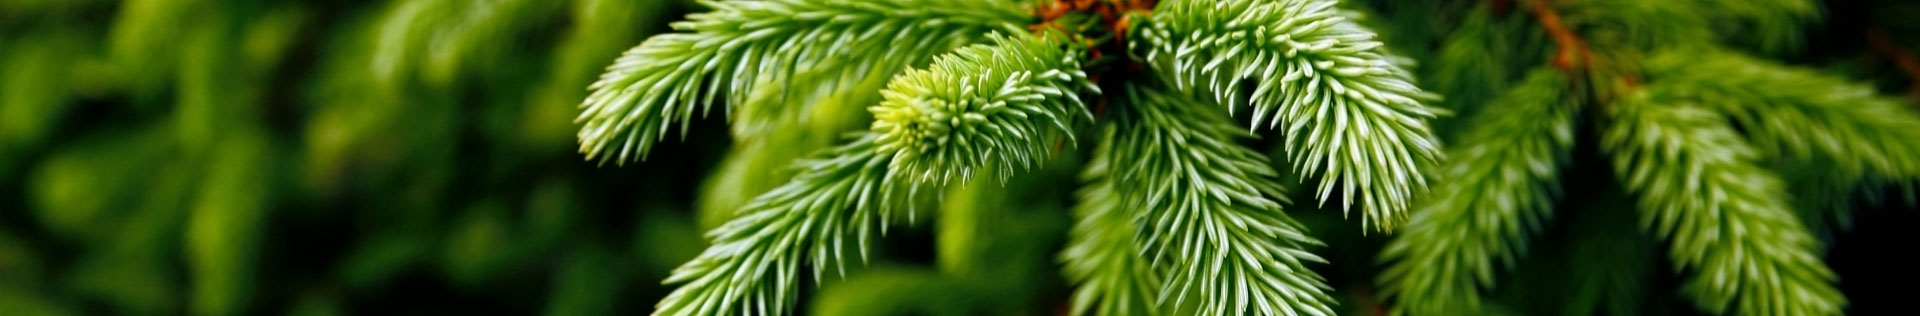 A close up photo of the spines on an evergreen